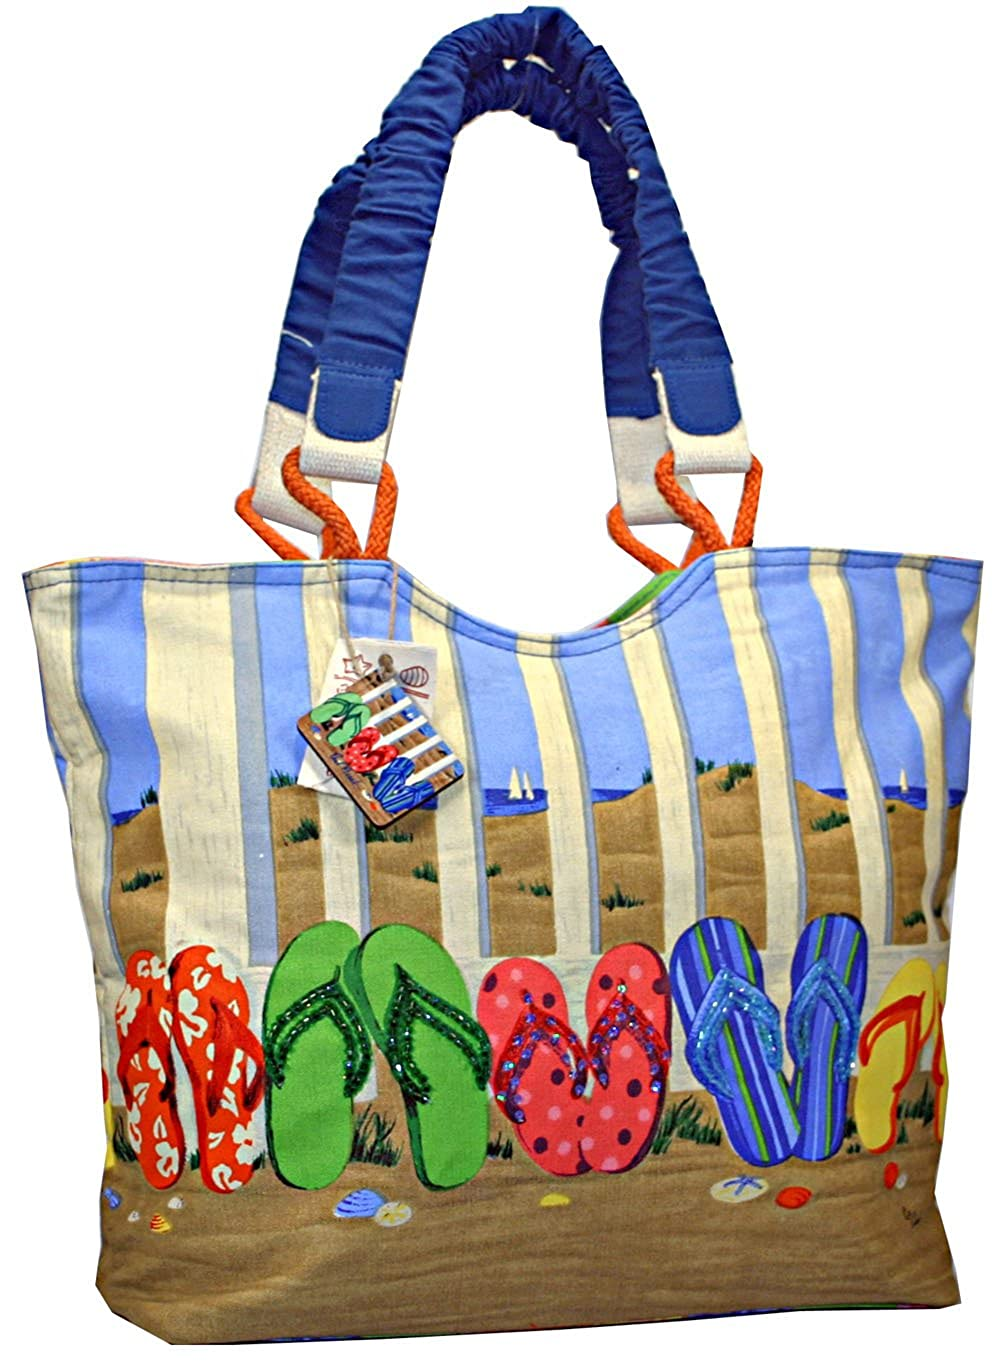 9abf2dcfd Flip flops in sand womens large beach tote bag clothing jpg 1005x1367 Flip  flop bags